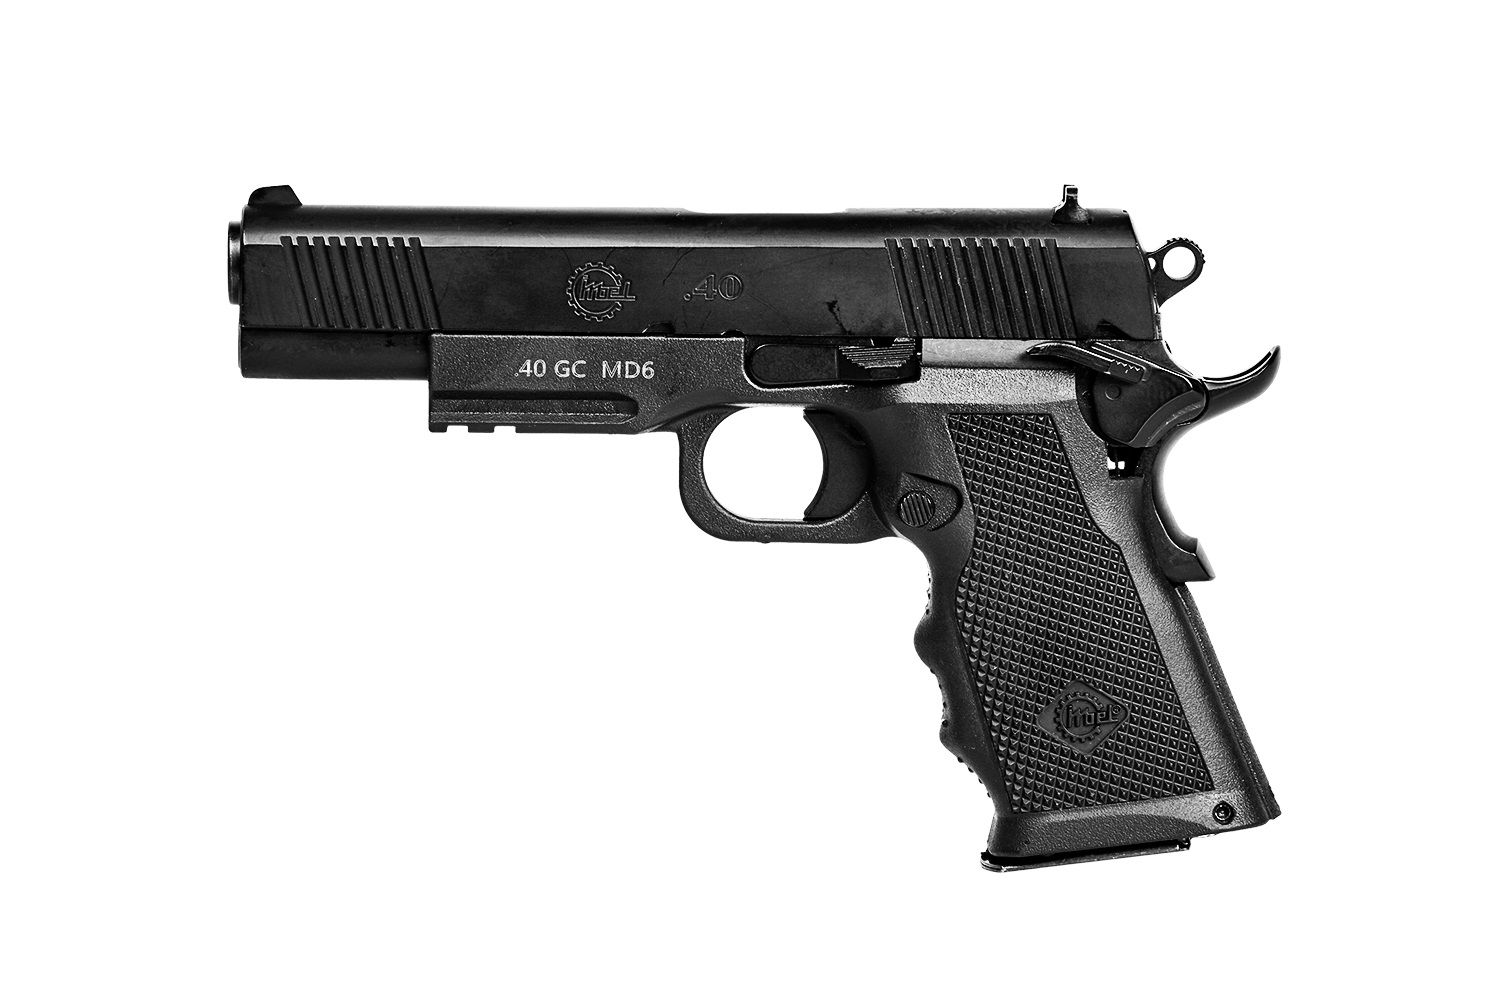 PISTOLA .40 GC - IMBEL MD6 C/ 03 CARREGADORES